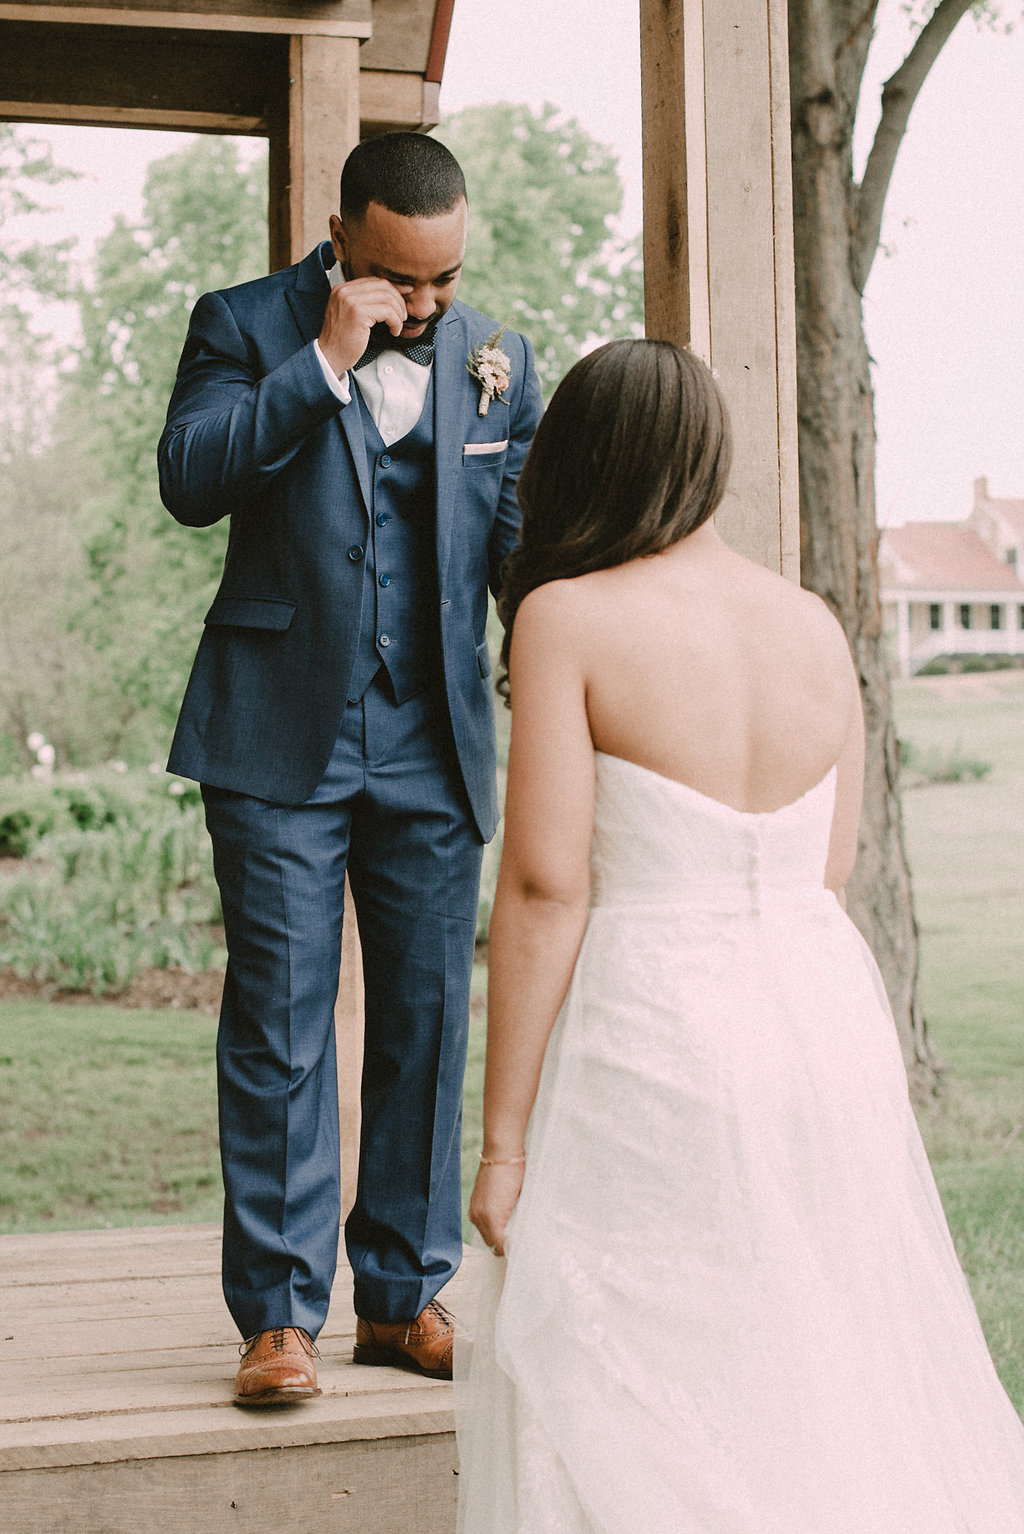 Groom crying when seeing bride